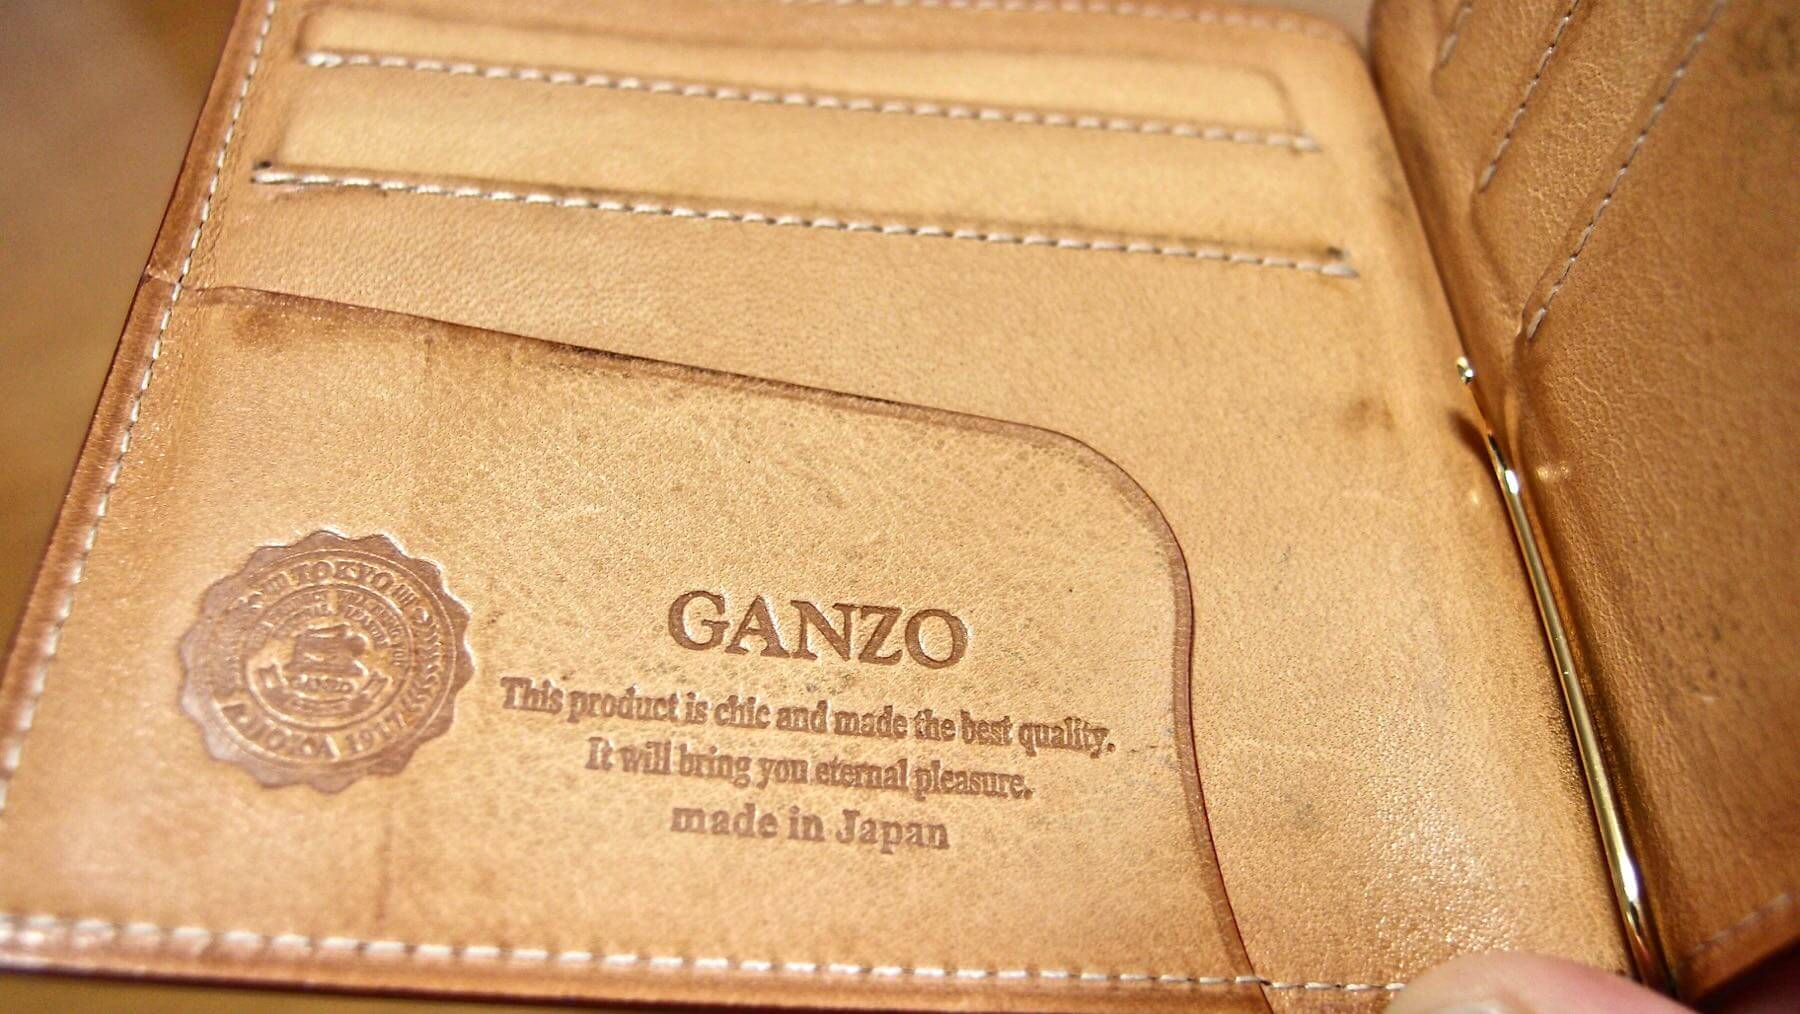 18 GANZO THIN BRIDLE Money clip One year after aging